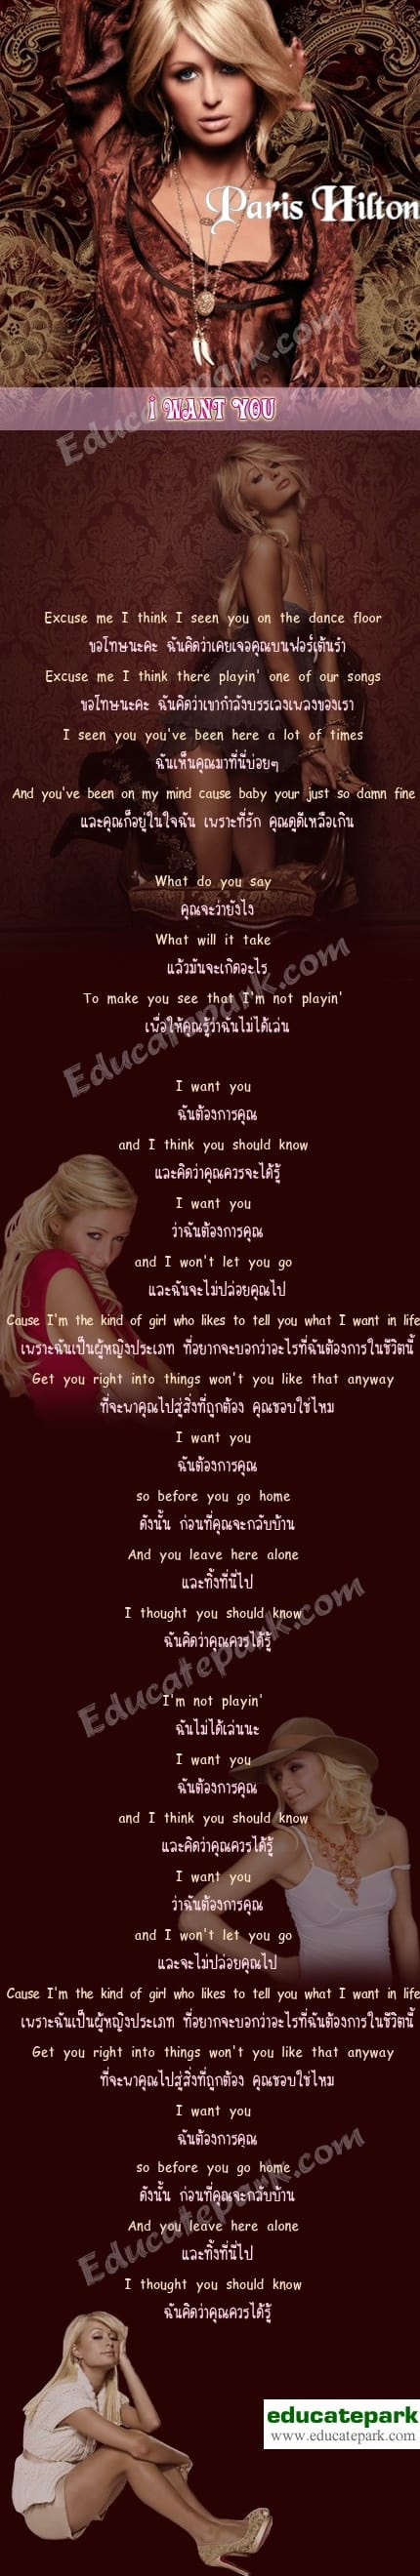 แปลเพลง I Want You - Paris Hilton